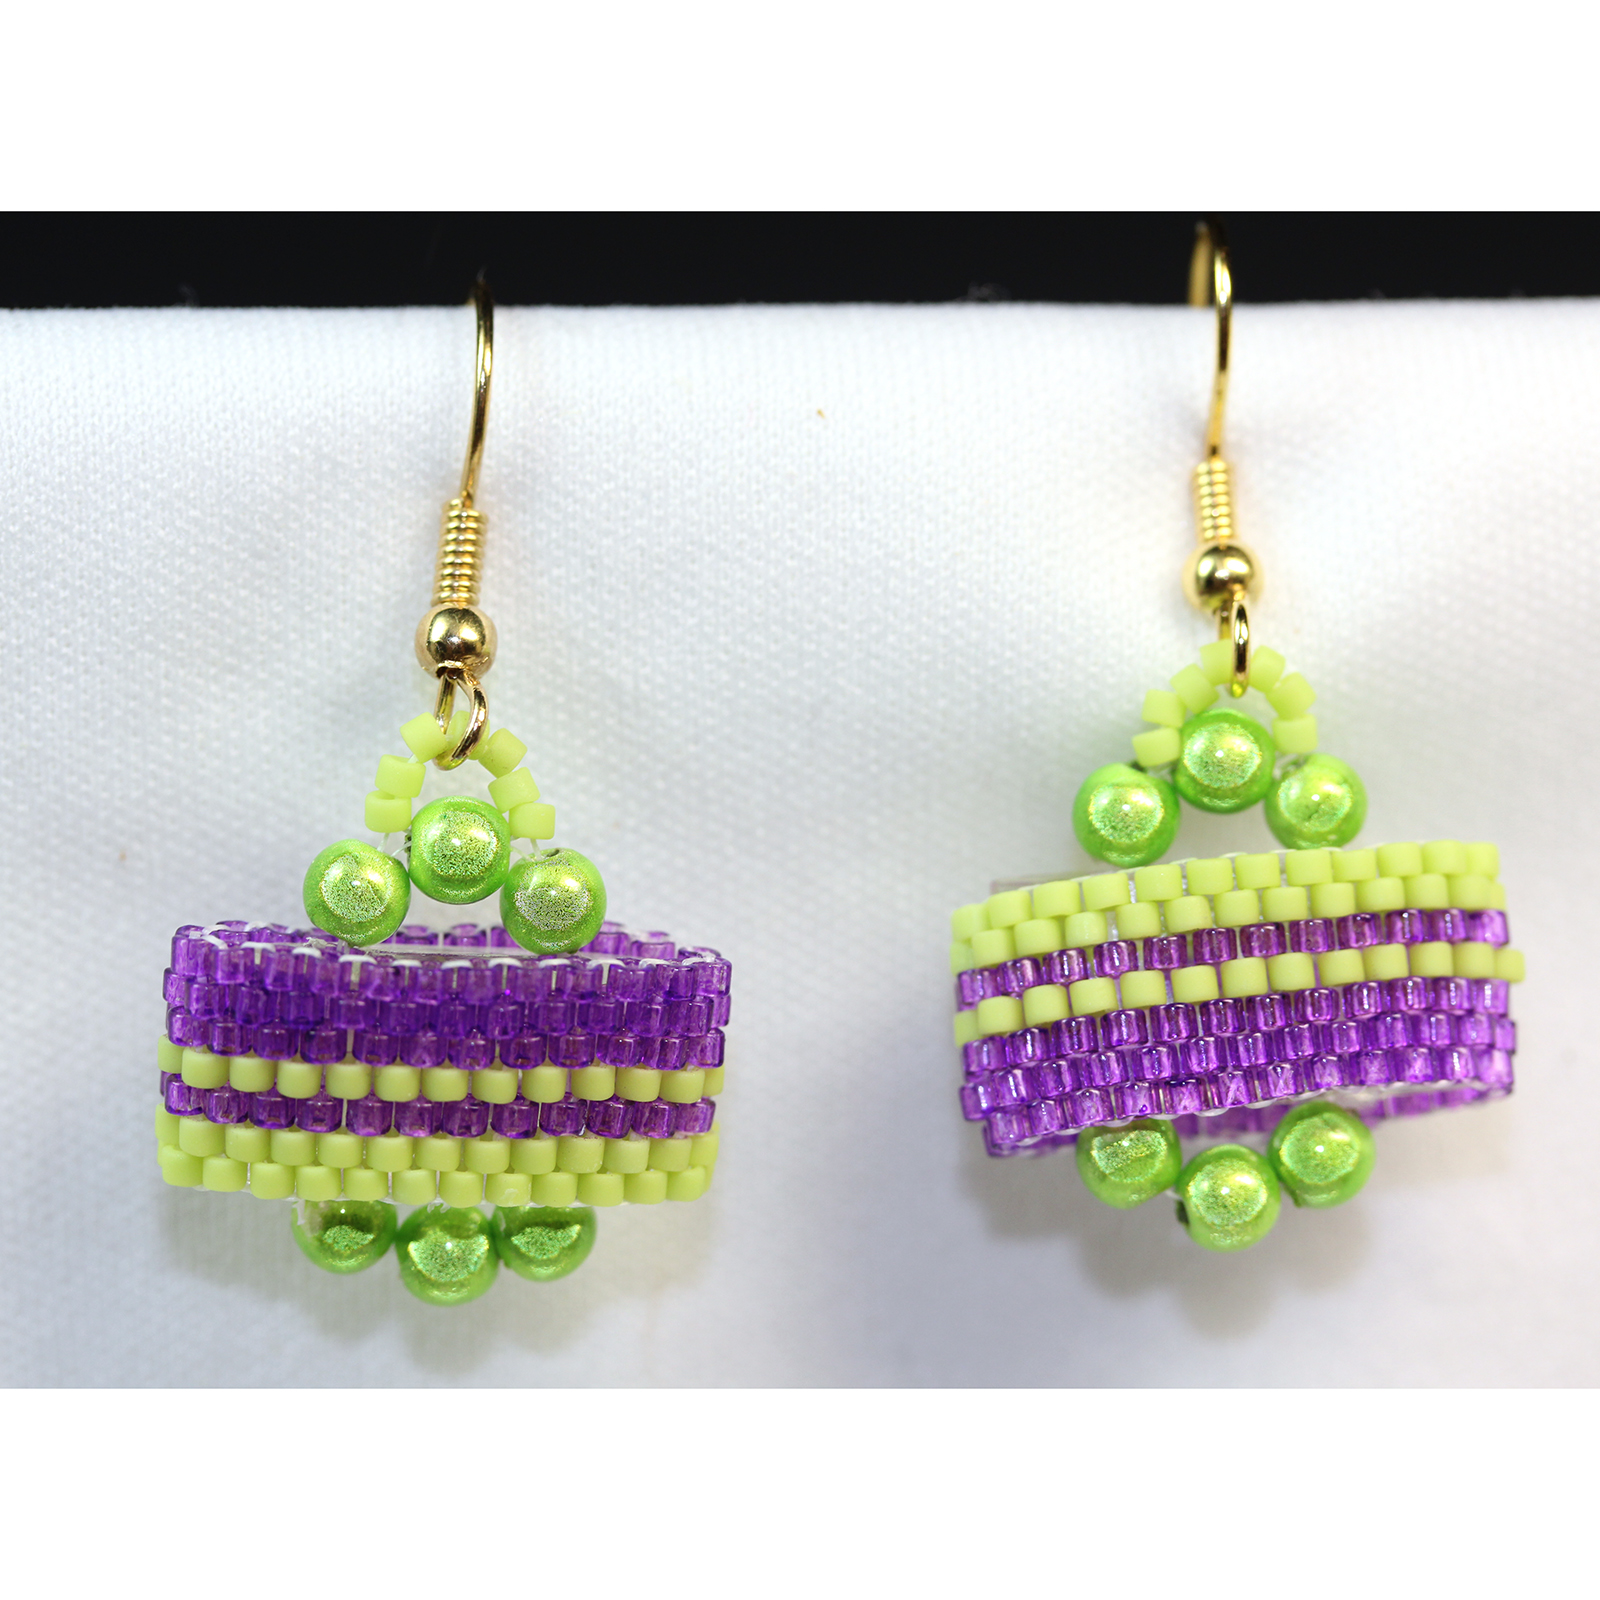 Delicas on Carrier Beads earrings